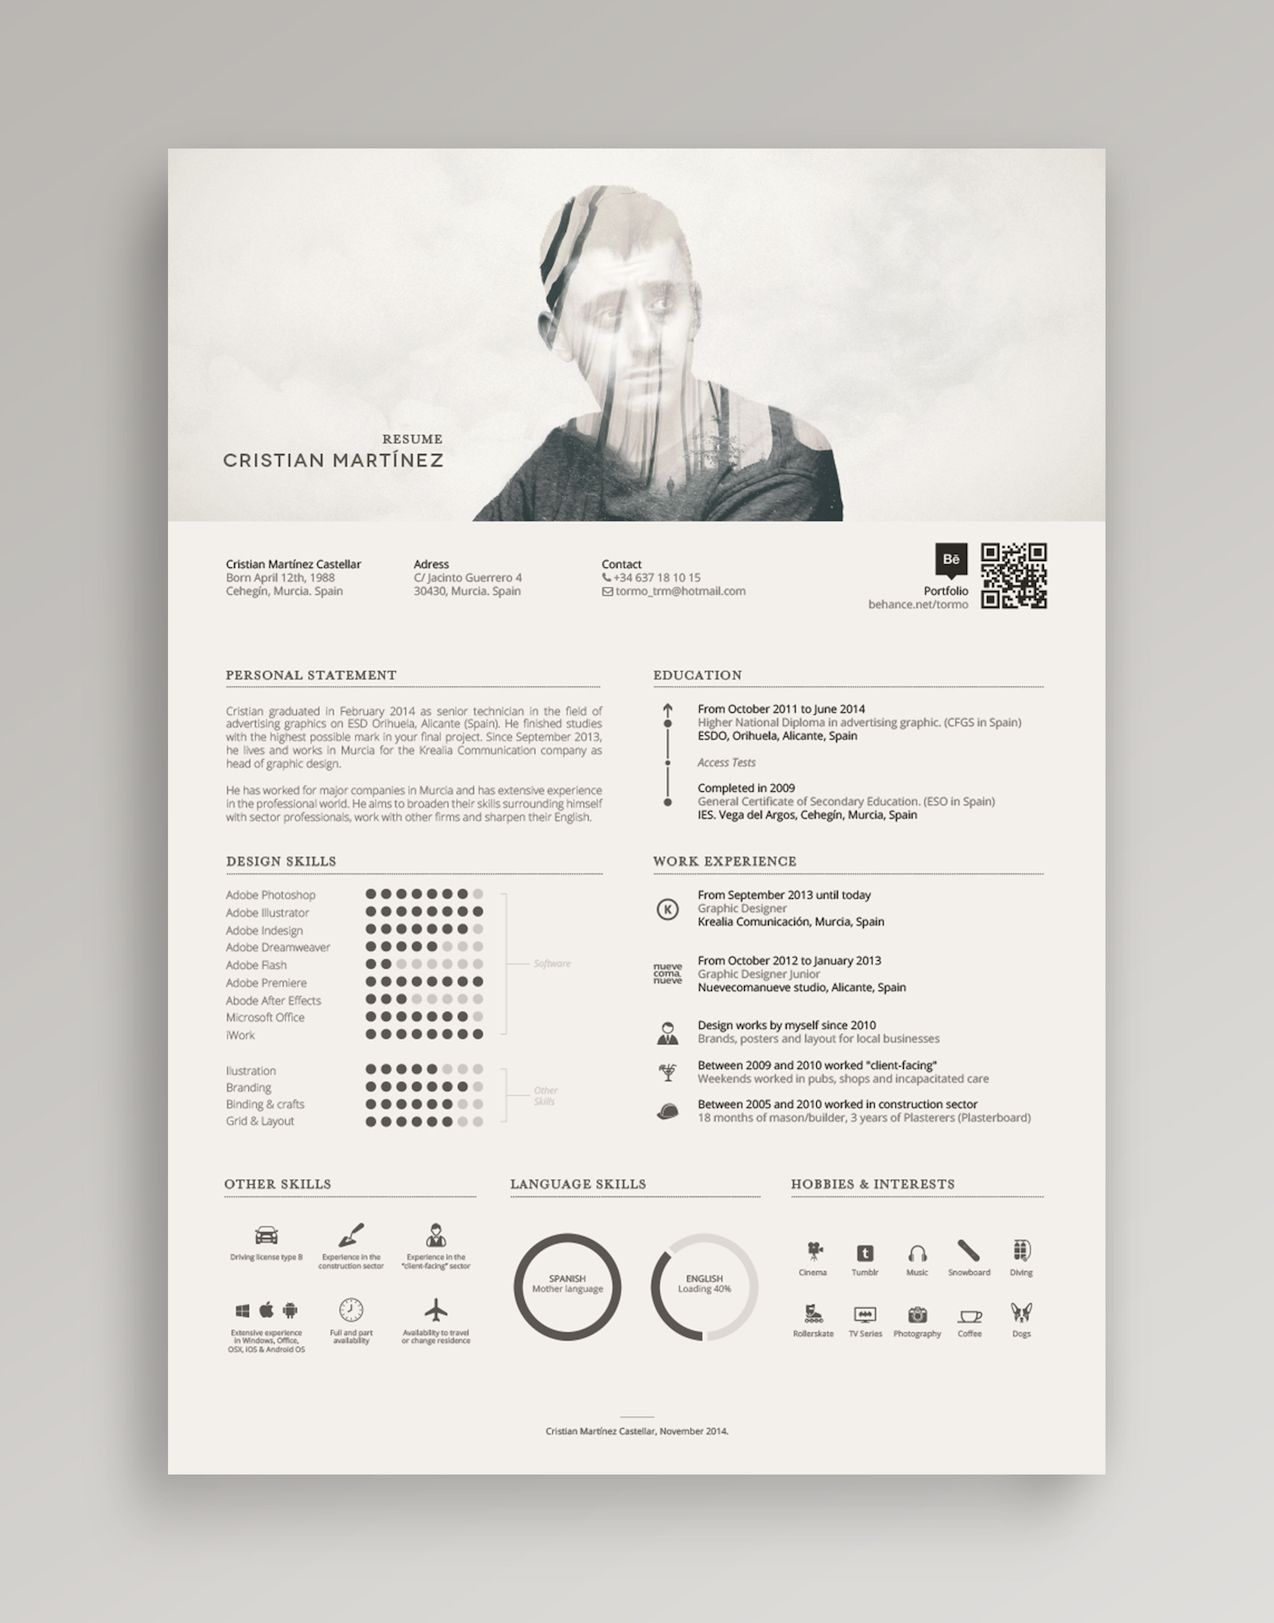 12+ Creative Resume Examples, Templates & Ideas   Daily Design Inspiration 28 - Graphic design resume, Graphic resume, Infographic resume, Resume design, Promotional design, Resume - Need to upgrade your resume or CV  Check out some of these innovative and creative resume examples from a diverse group of designers!